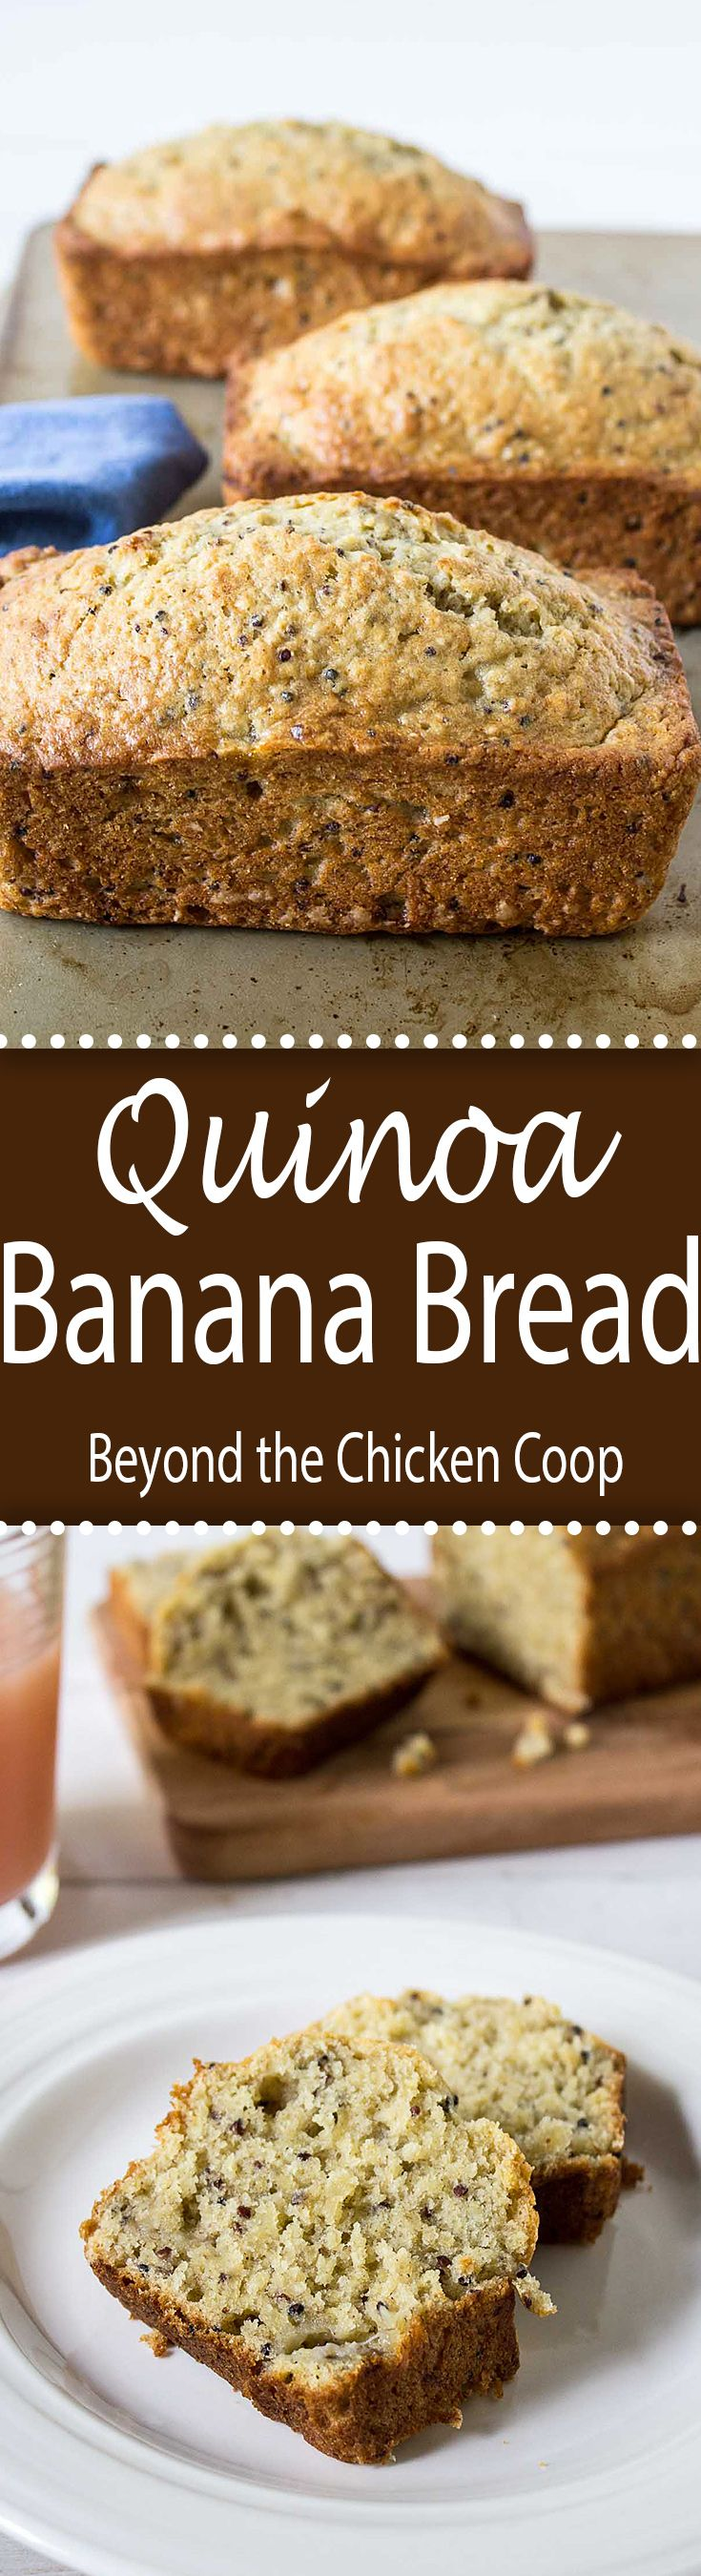 Traditional banana bread with quinoa added for extra protein.